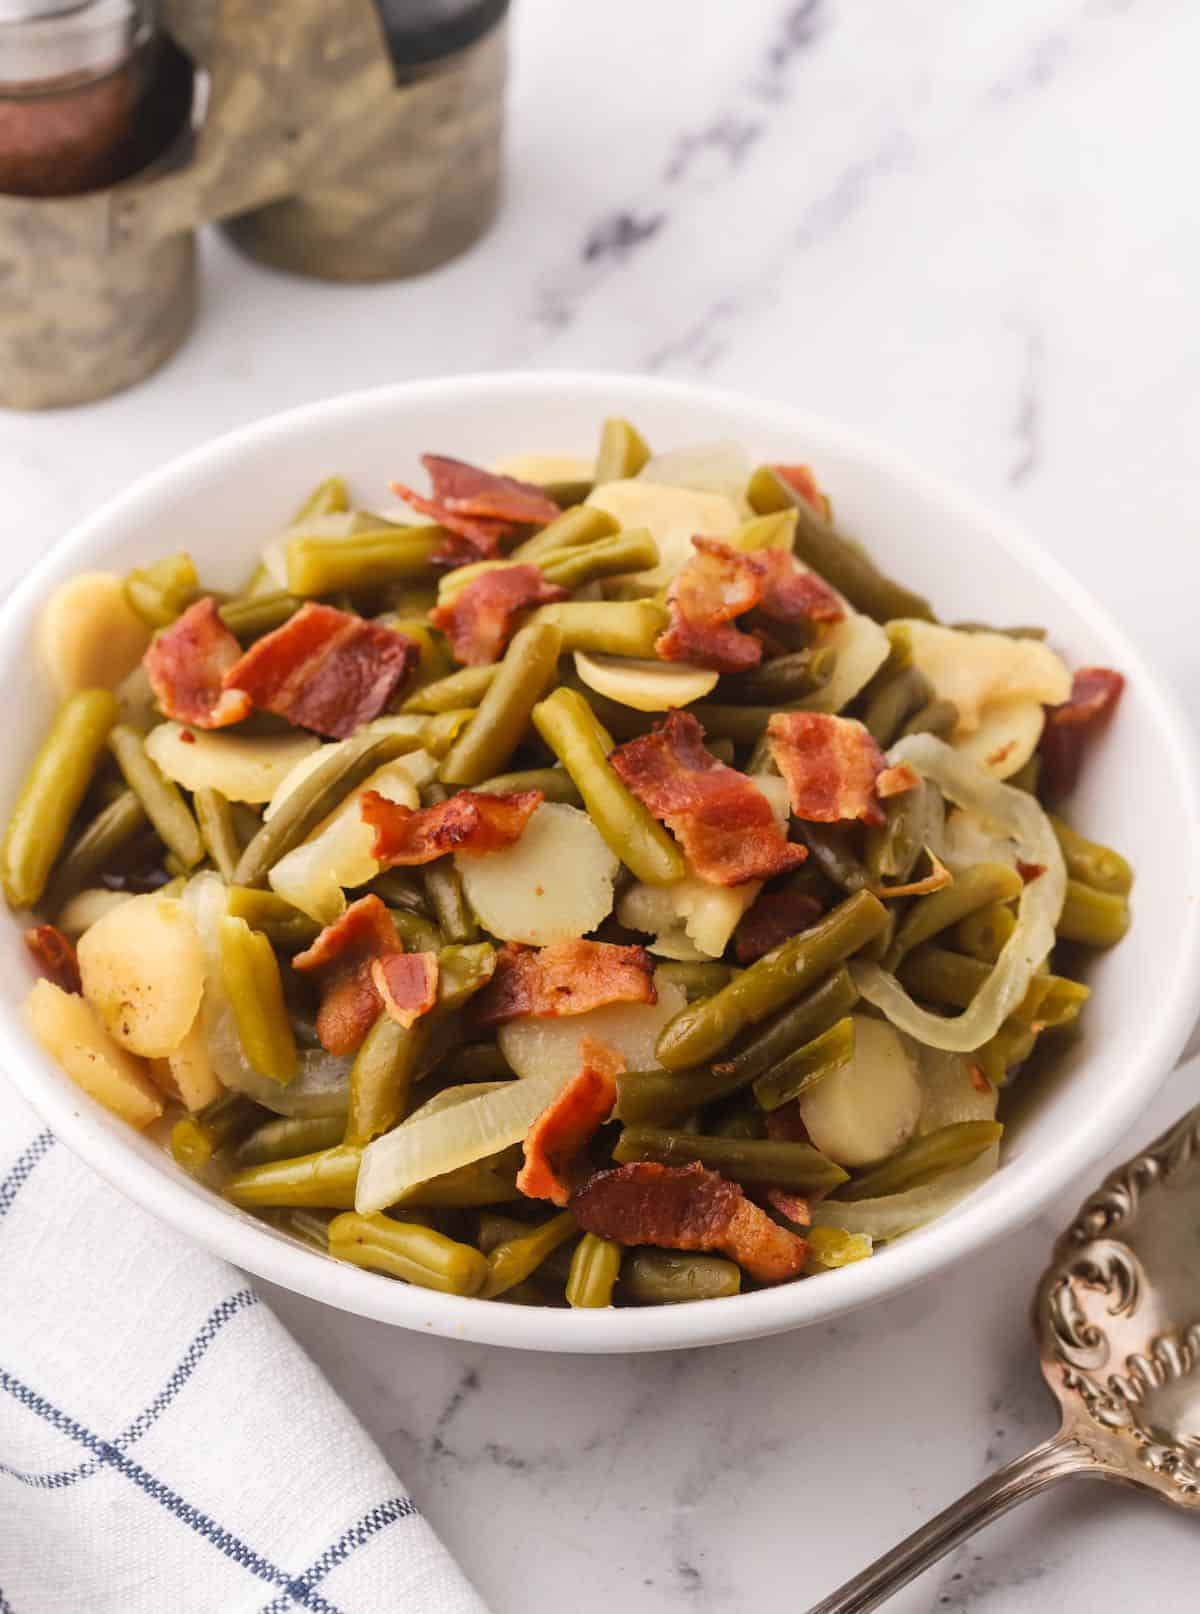 Sweet and sour green beans topped with bacon in a white serving bowl.